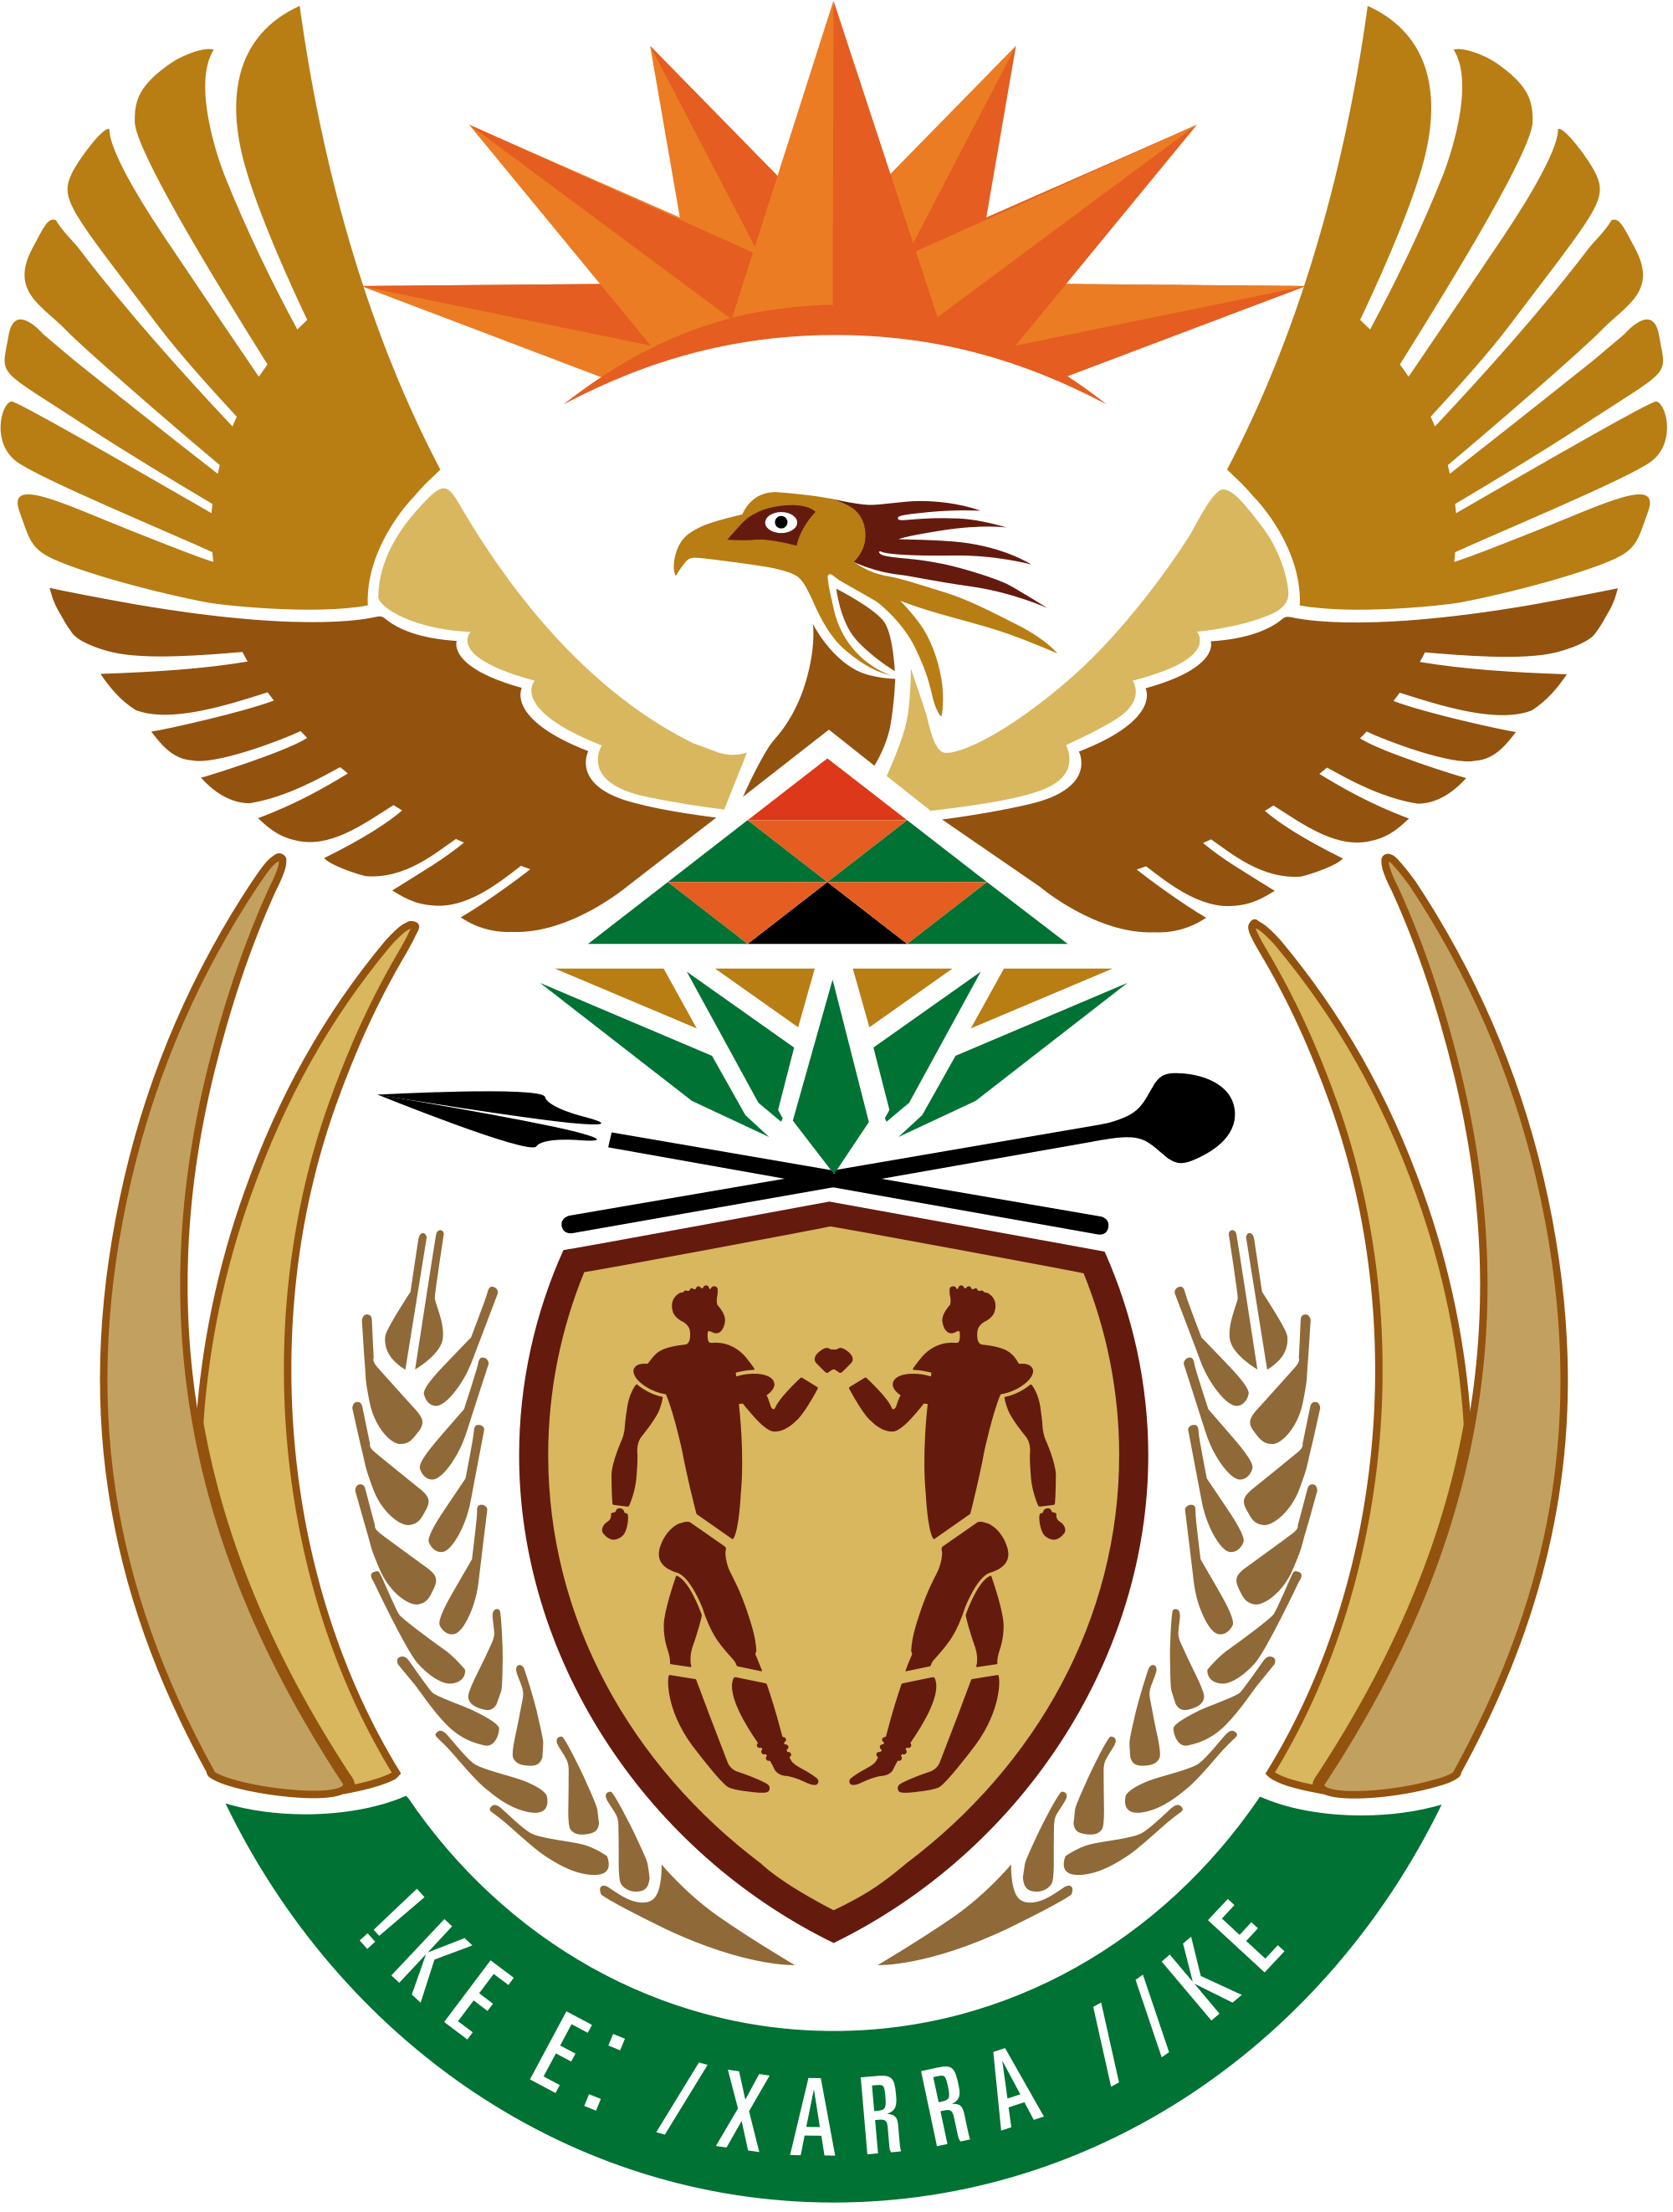 DEPARTMENT OF MINERALS AND ENERGY REPUBLIC OF SOUTH AFRICA